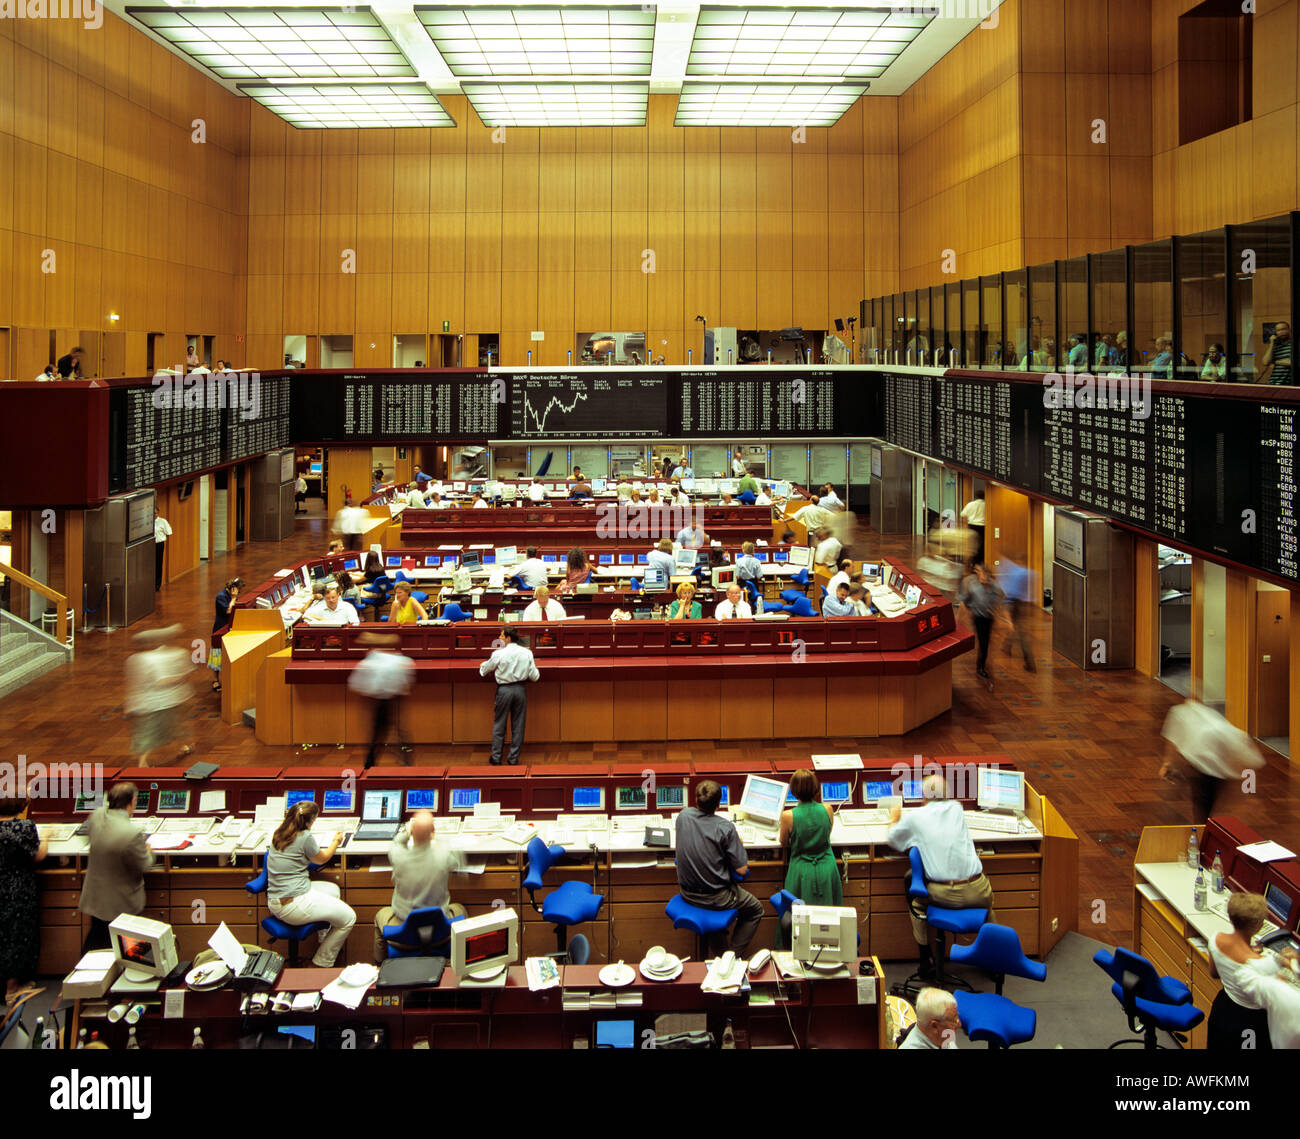 1999 interior view of the Frankfurt Stock Exchange (DAX) in Frankfurt, Hesse, Germany, Europe - Stock Image